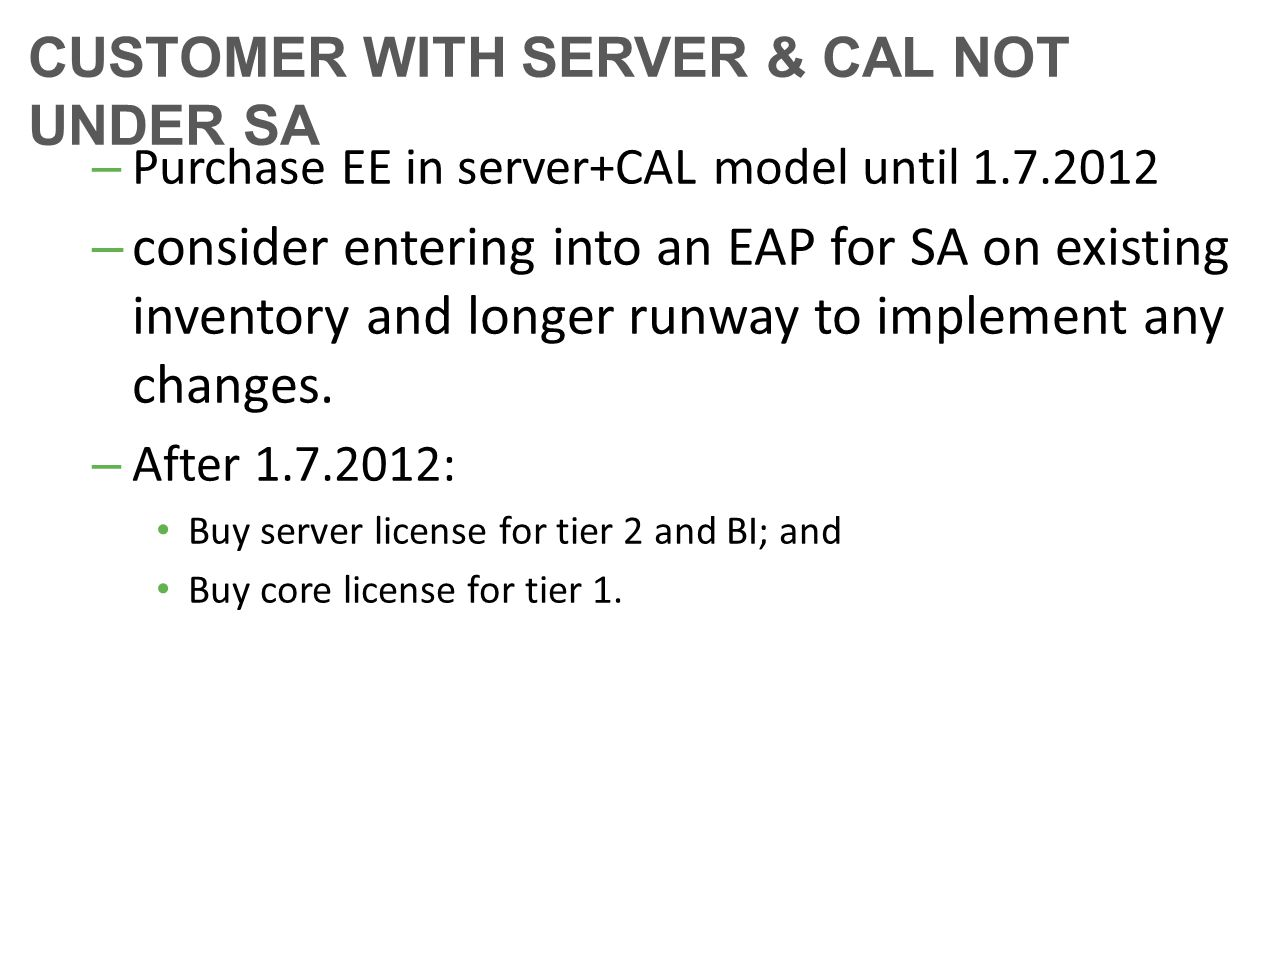 CUSTOMER WITH SERVER & CAL NOT UNDER SA – Purchase EE in server+CAL model until 1.7.2012 – consider entering into an EAP for SA on existing inventory